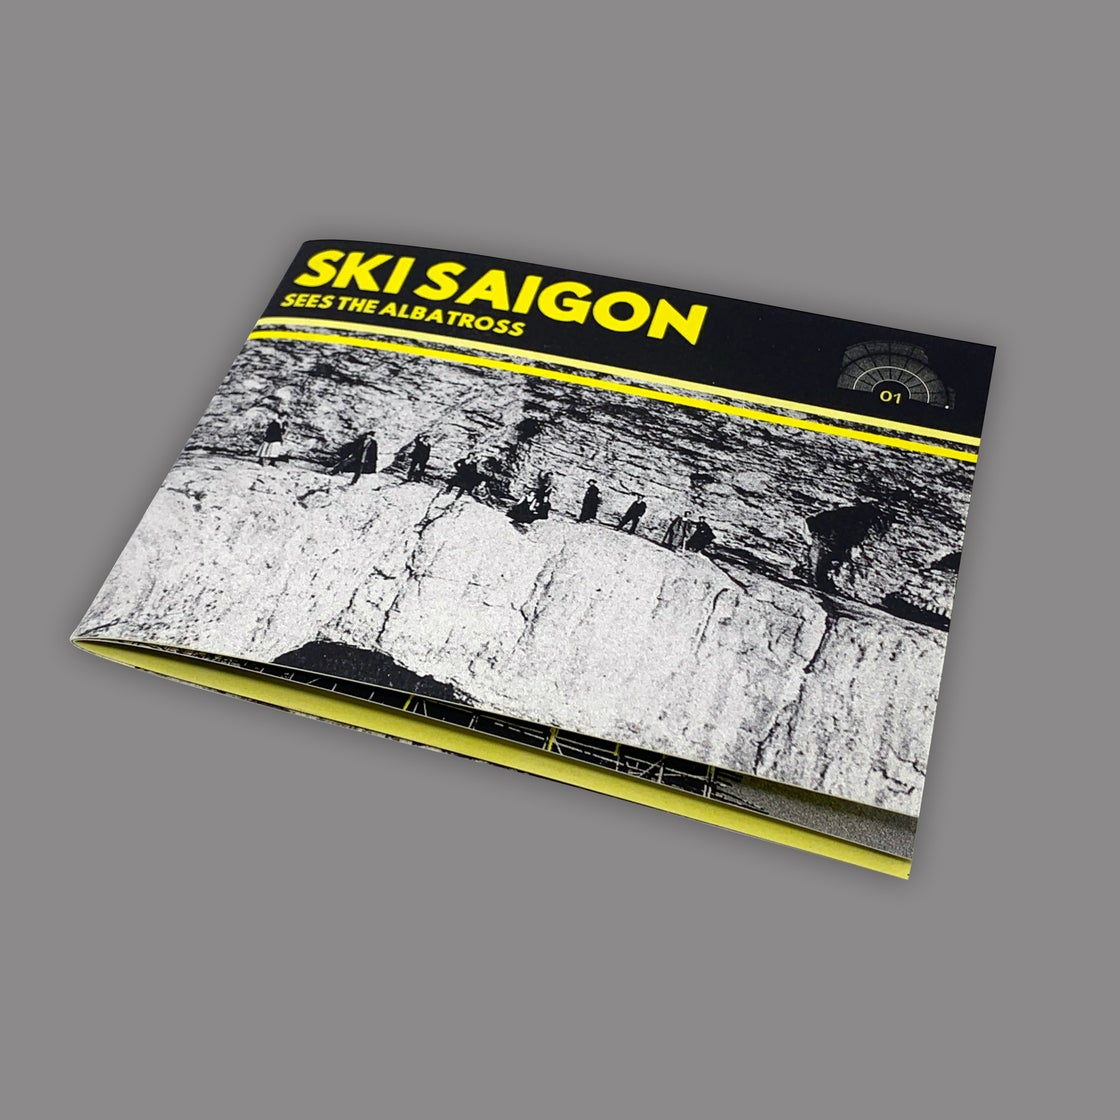 Image of Ski Saigon — Sees the Albatross